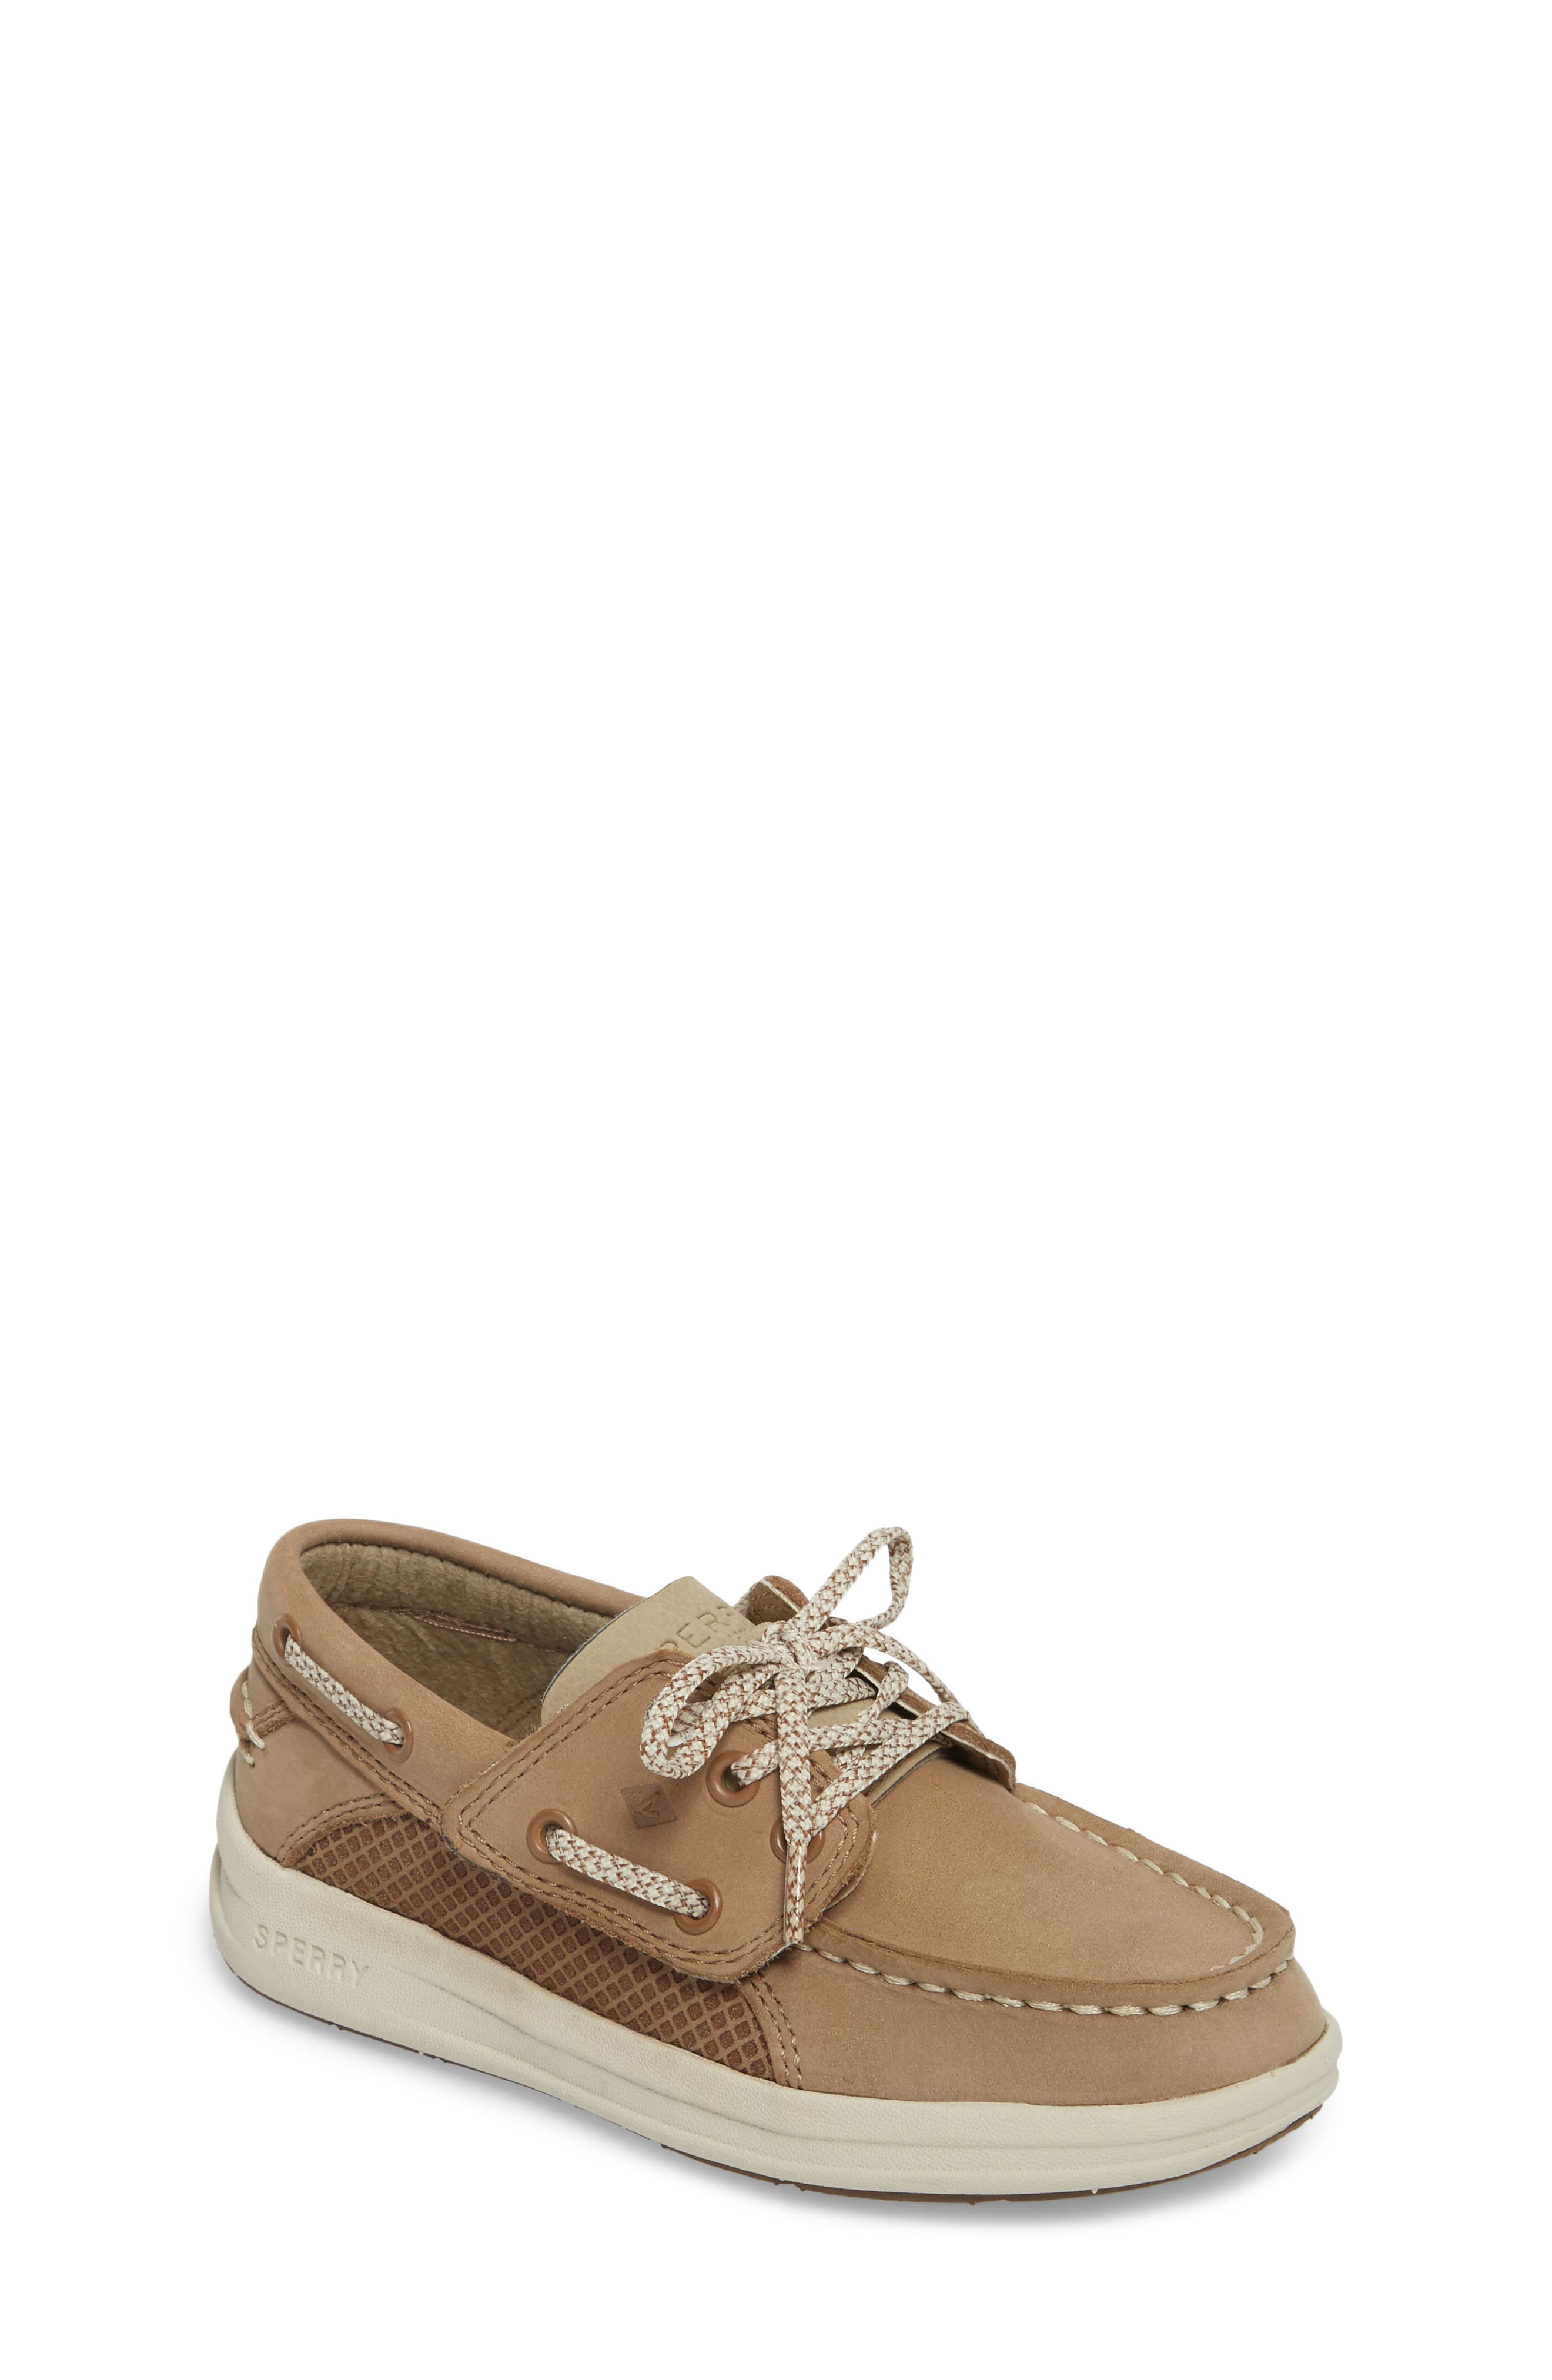 Main Image - Sperry Kids Gamefish Boat Shoe (Walker & Toddler)